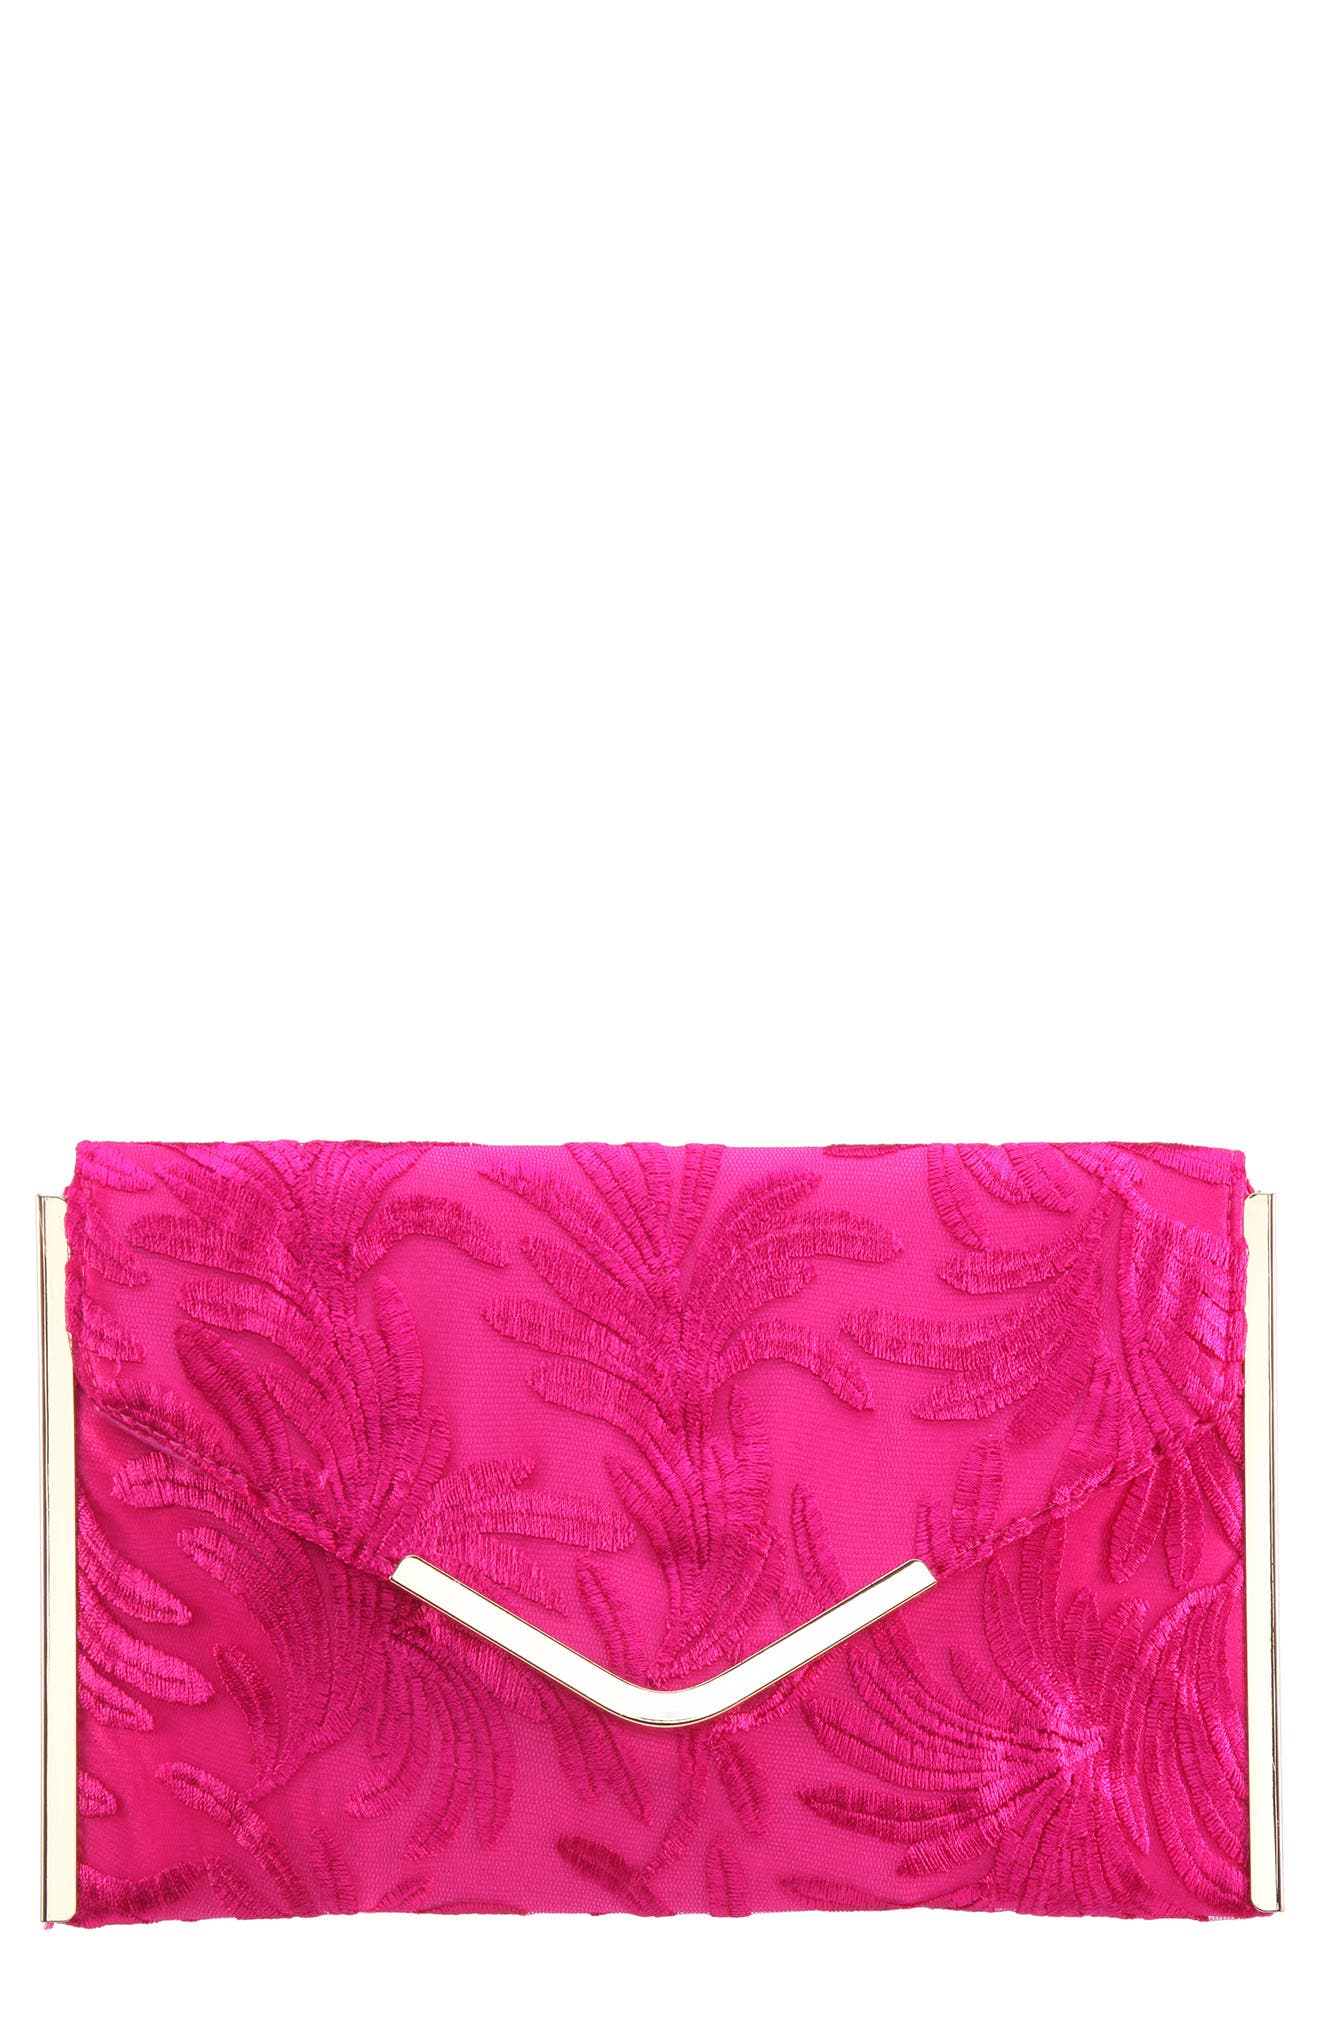 EMBROIDERY ENVELOPE CLUTCH BAG - PINK